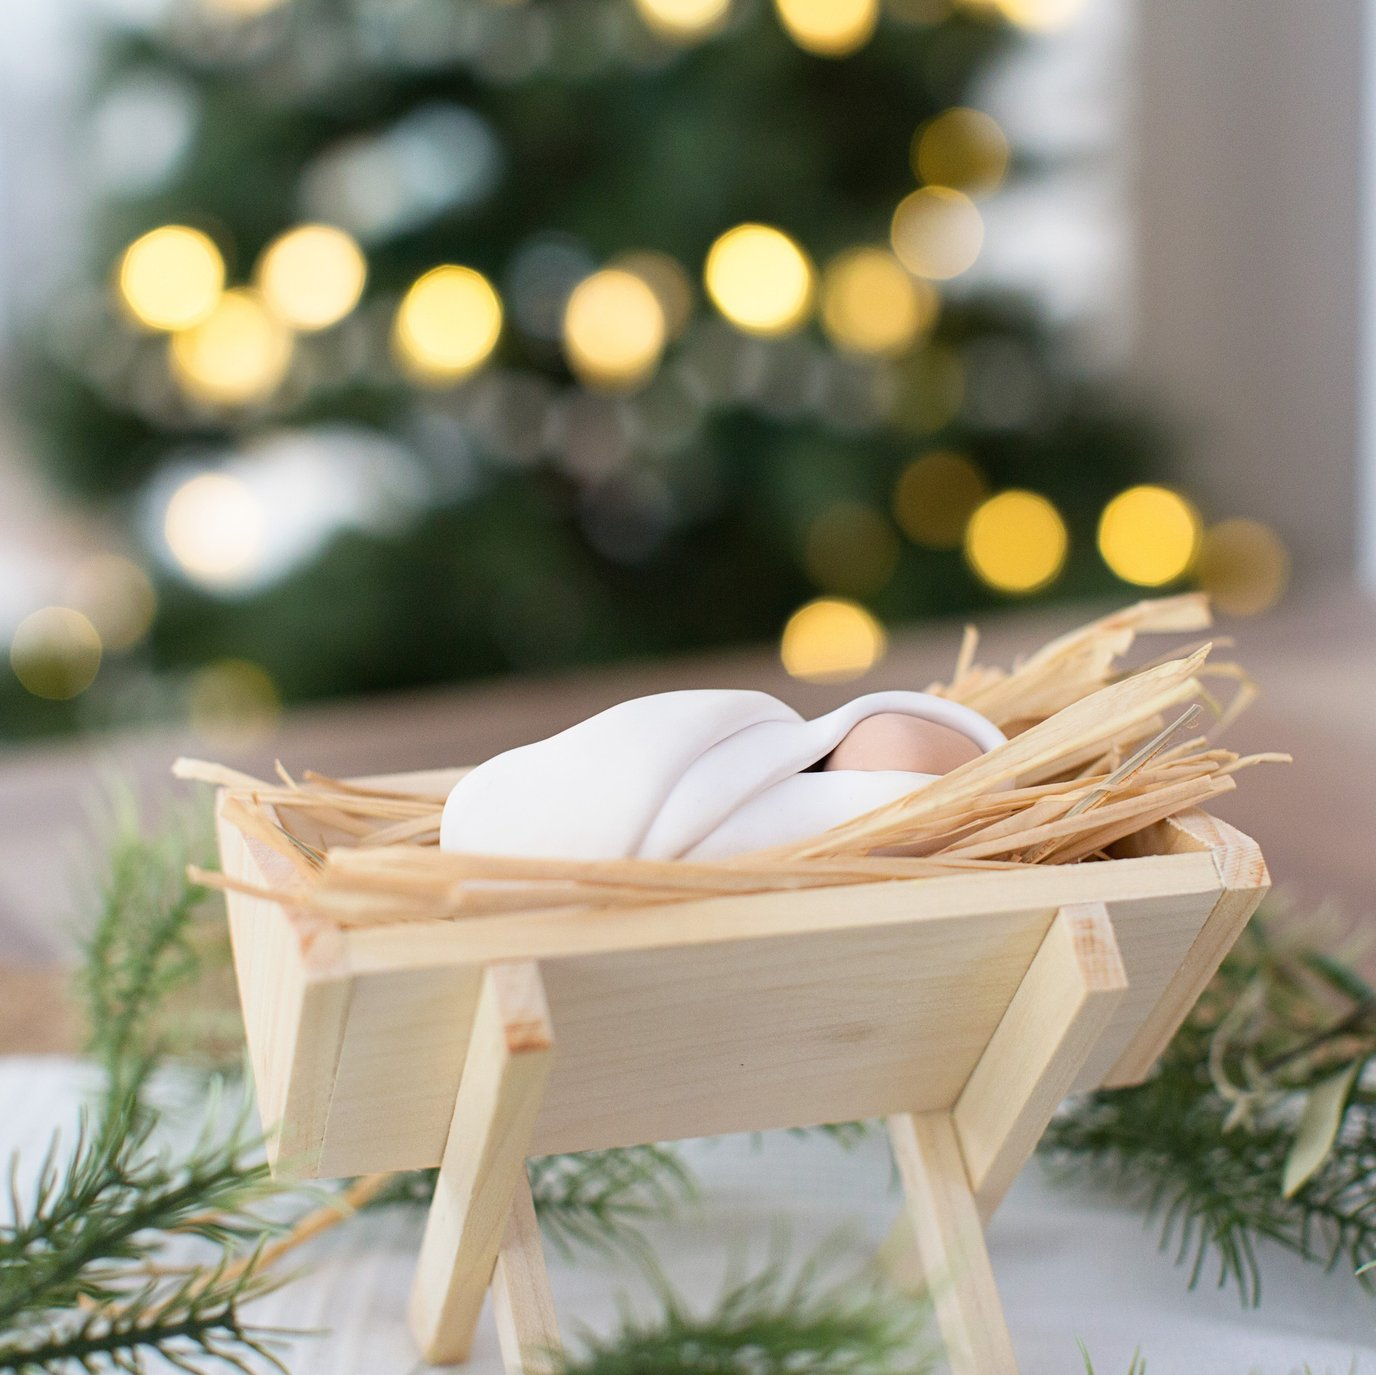 away_in_a_manger_no_crib_for_a_bed_the_little_lord_jesus_lay_down_his_sweet_head_the_stars_in_the_heavens_look_down_where_he_lay_the_little_lord_jesus_asleep_on_the_hay_tradition_christmas_family_0f77d64e-3142-4bad-9487-b369813809bd_1376x13.jpg